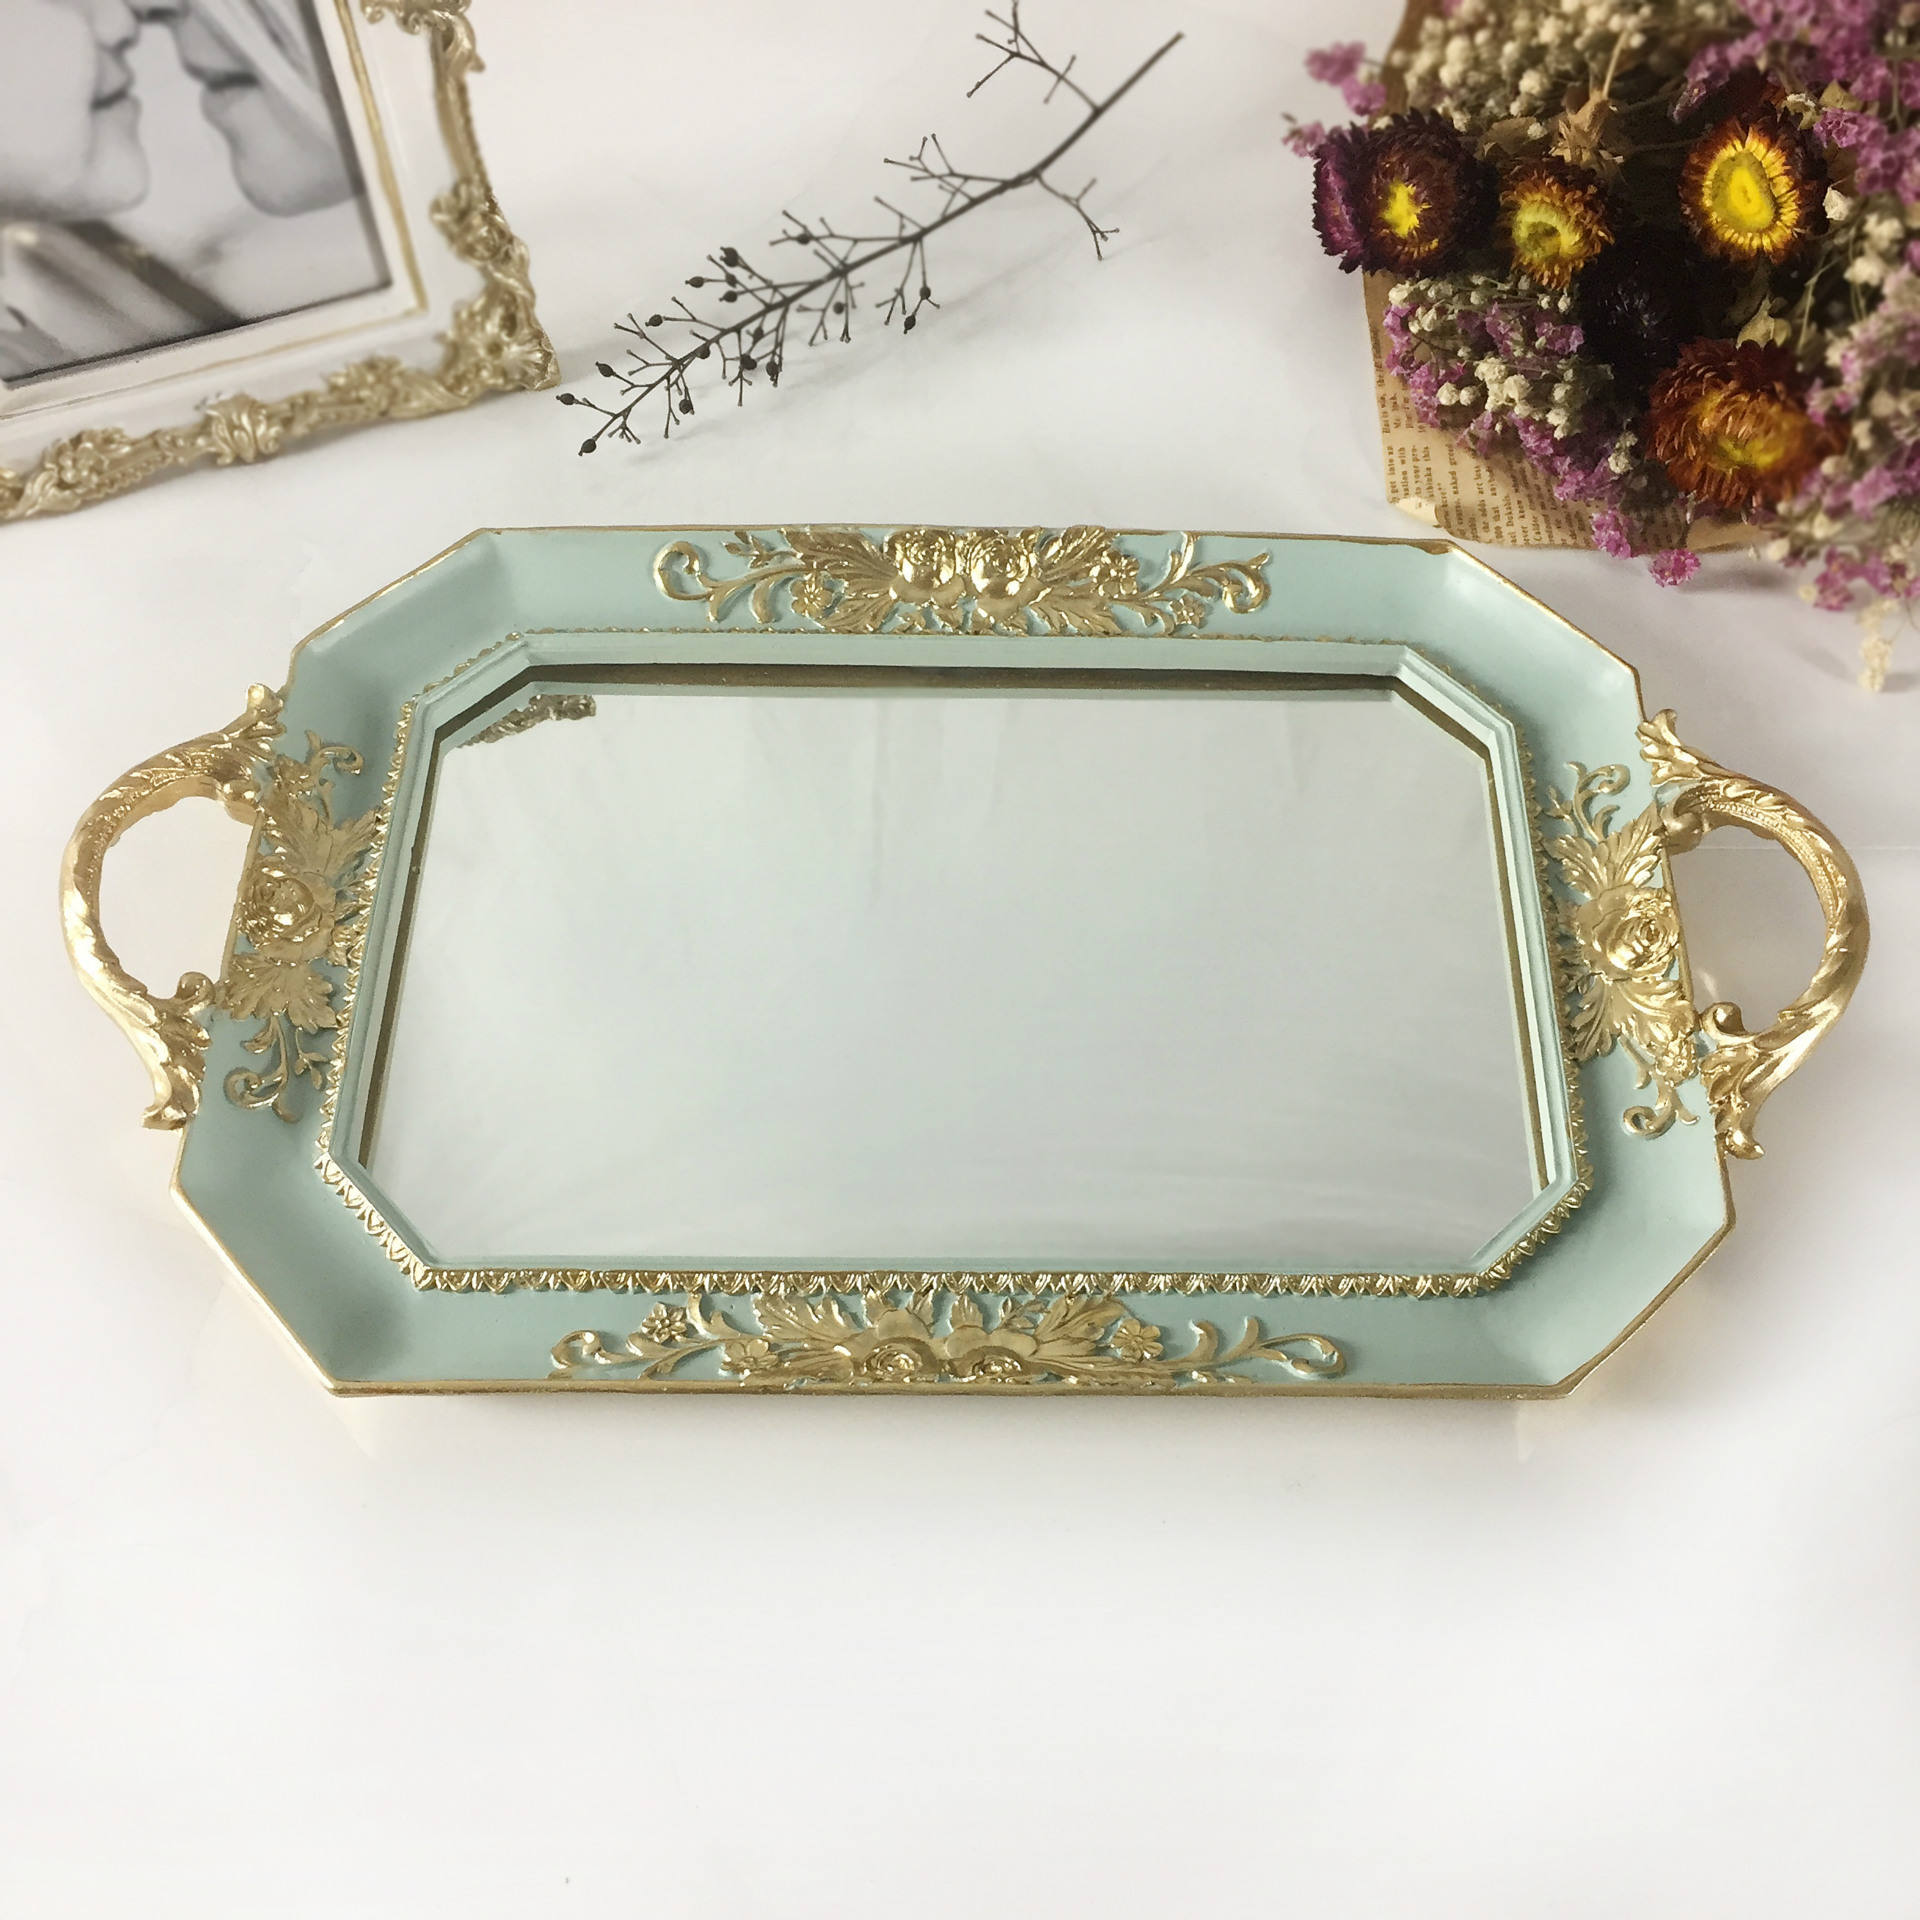 RTS Nordic European Style Plastic Resin Mirror Tray For Christmas Home Hotel Decor